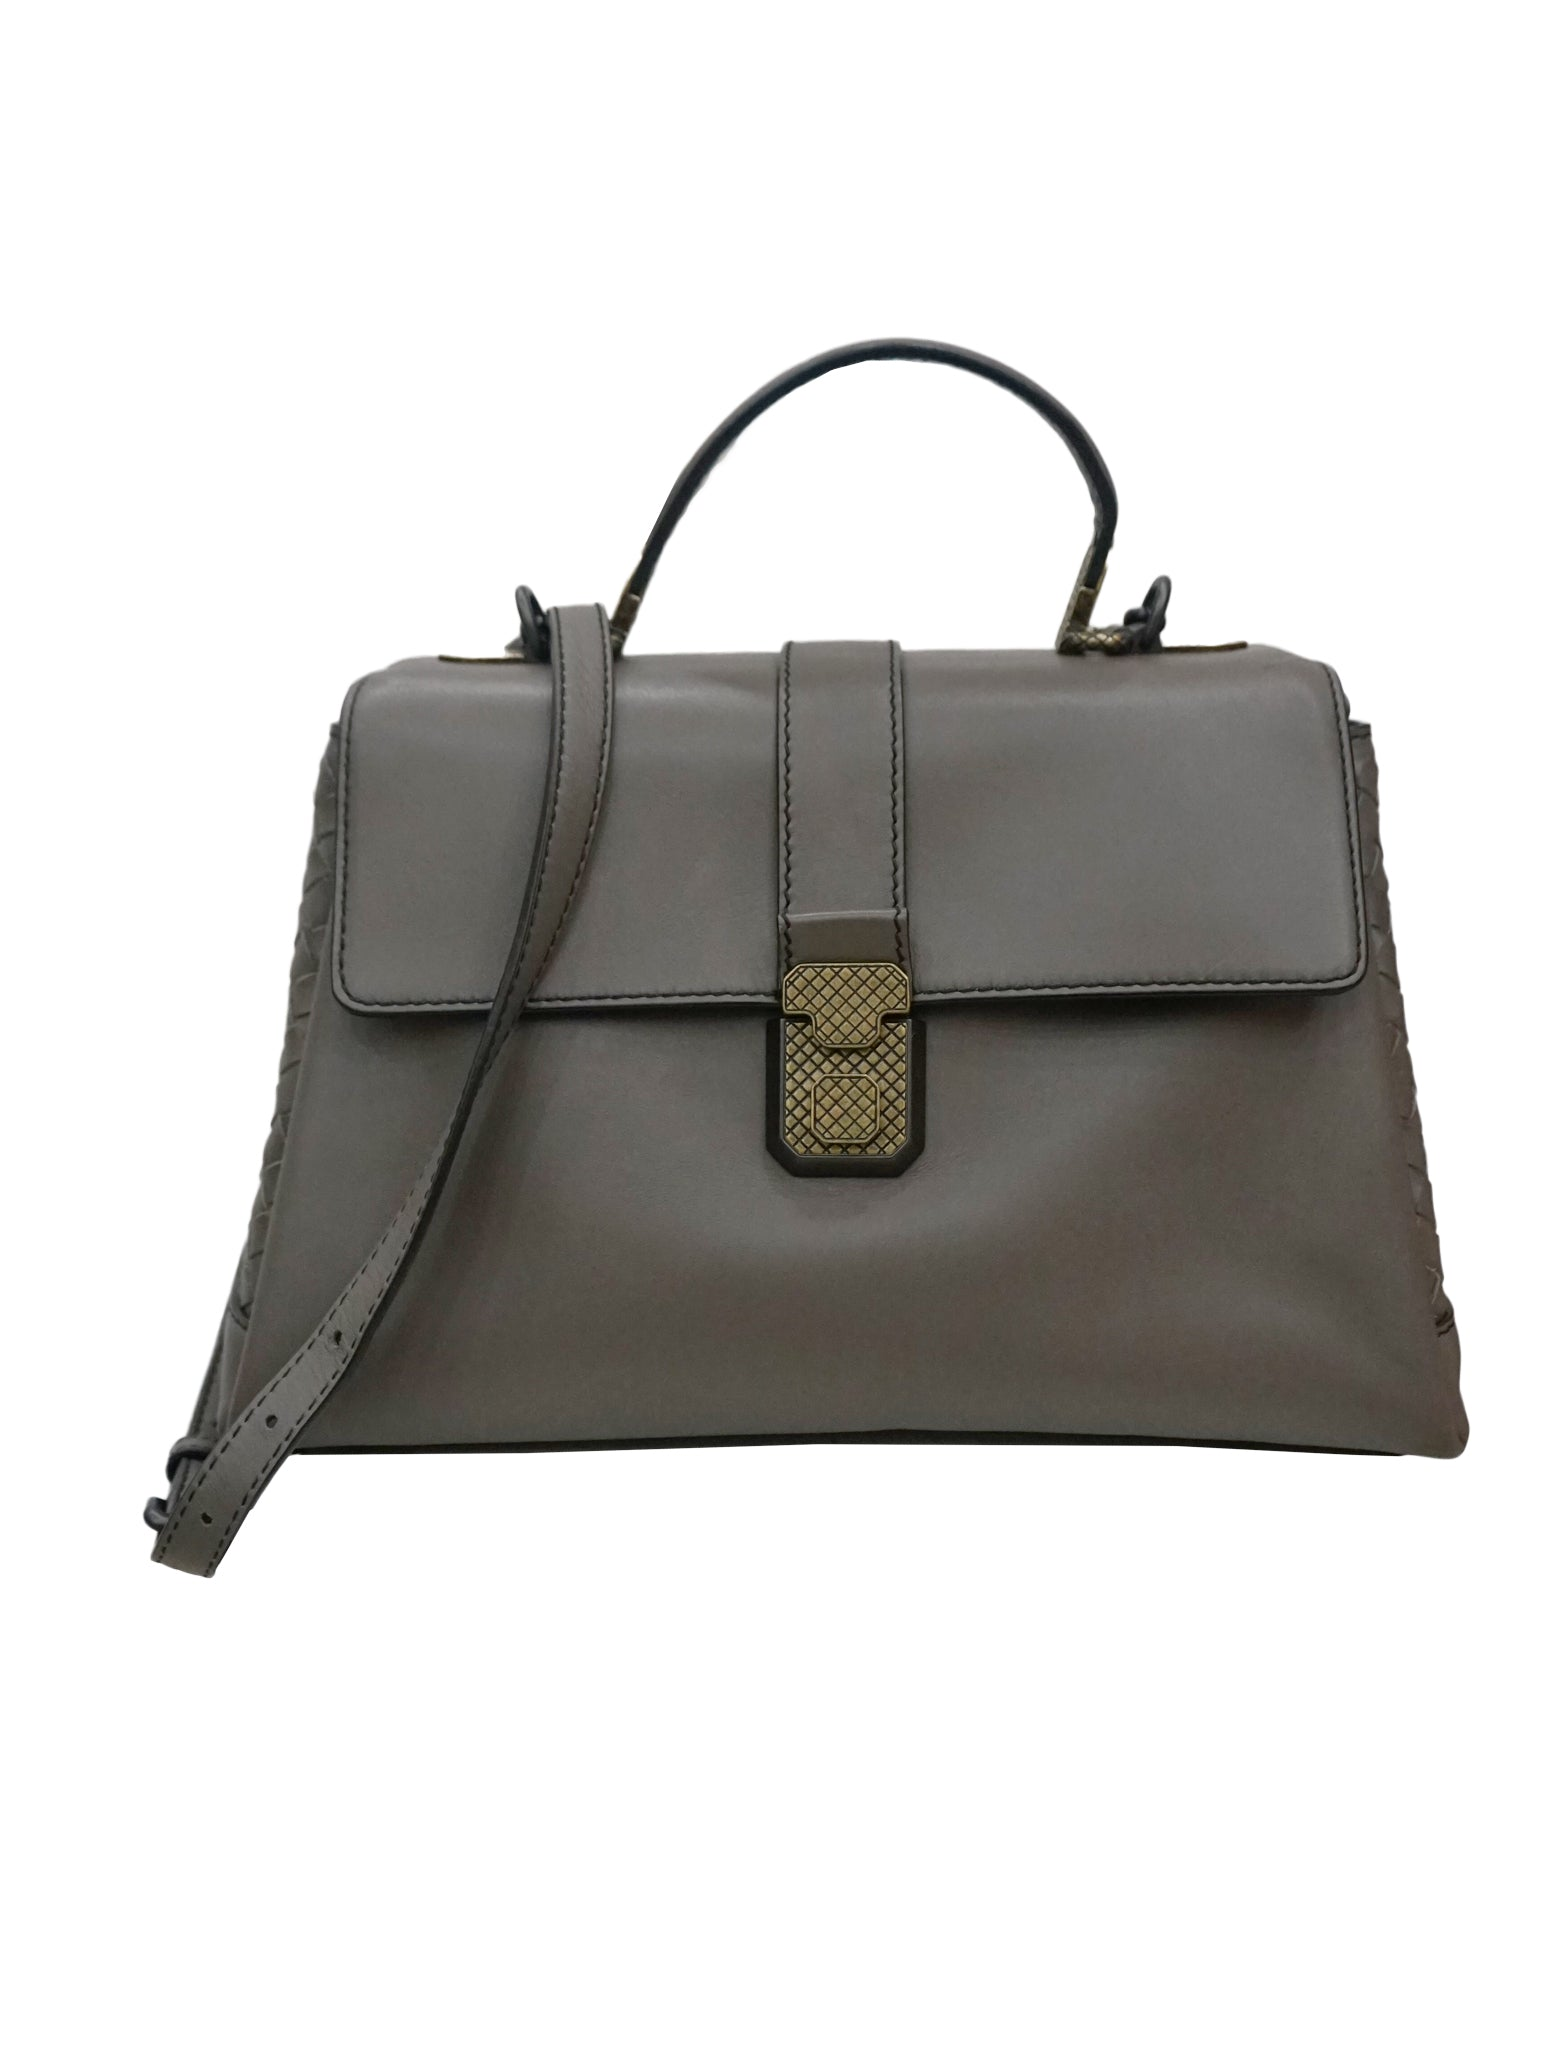 GRAY LEATHER NAPPA PIAZZA TOP HANDLE BAG